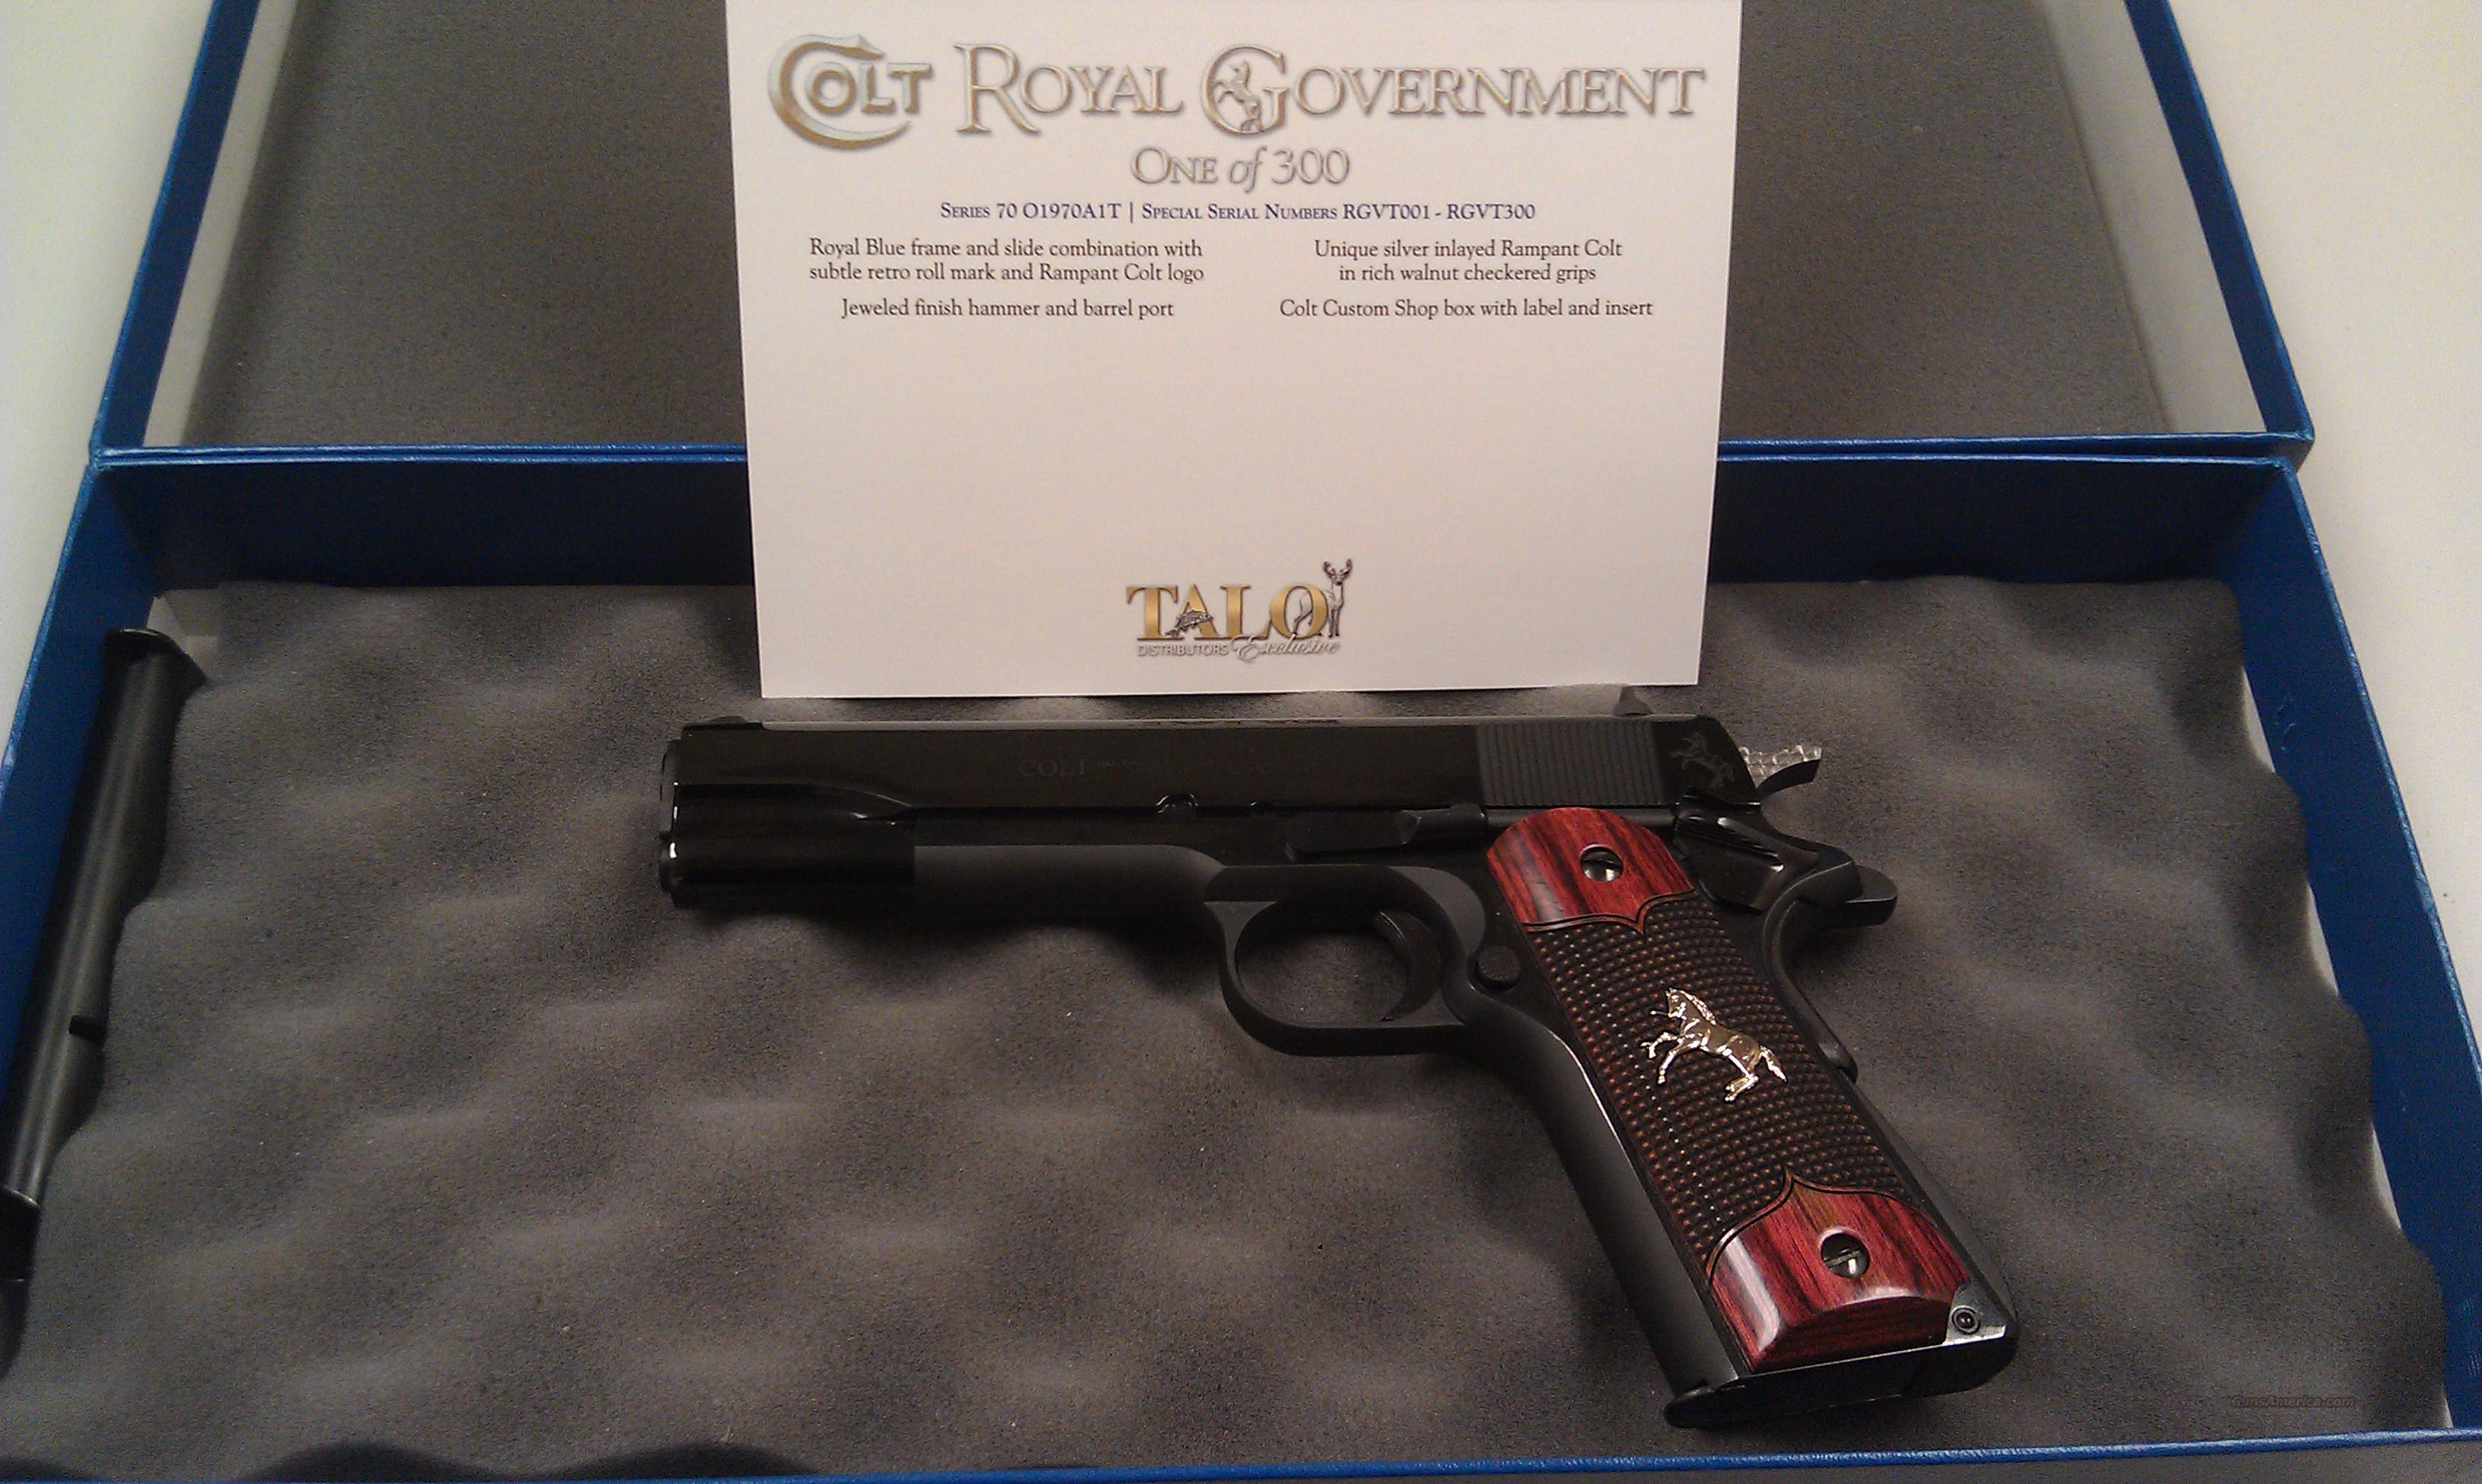 Colt Royal Government 1911  Guns > Pistols > Colt Automatic Pistols (1911 & Var)